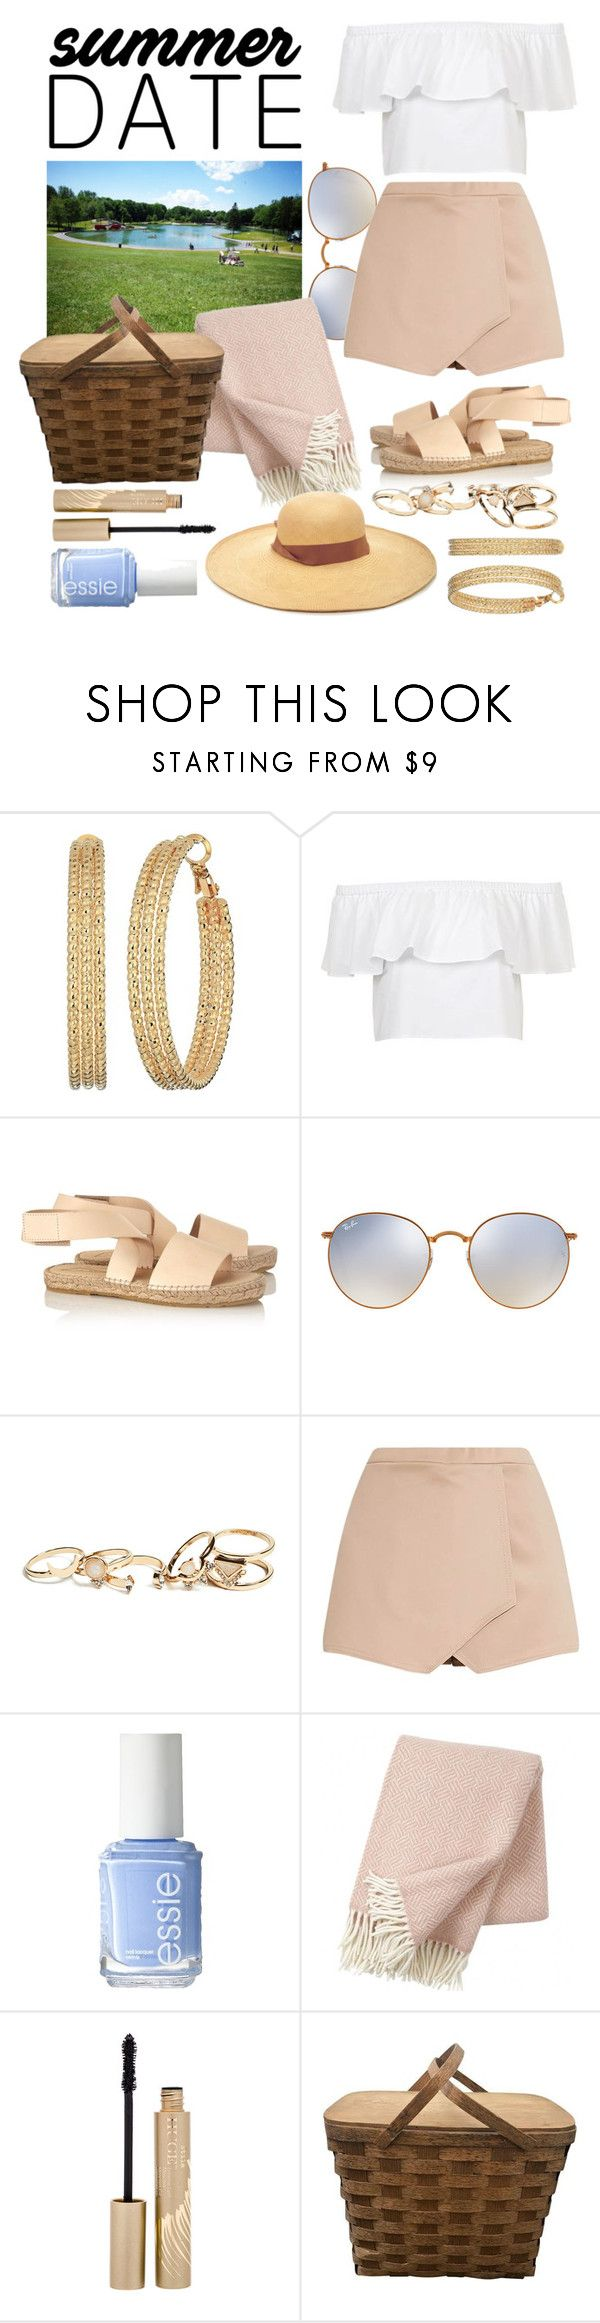 """Picnic in Mount Royal Park"" by zooboolakiss ❤ liked on Polyvore featuring GUESS, Topshop, Prism, Ray-Ban, Essie, Klippan, Stila and Sensi Studio"